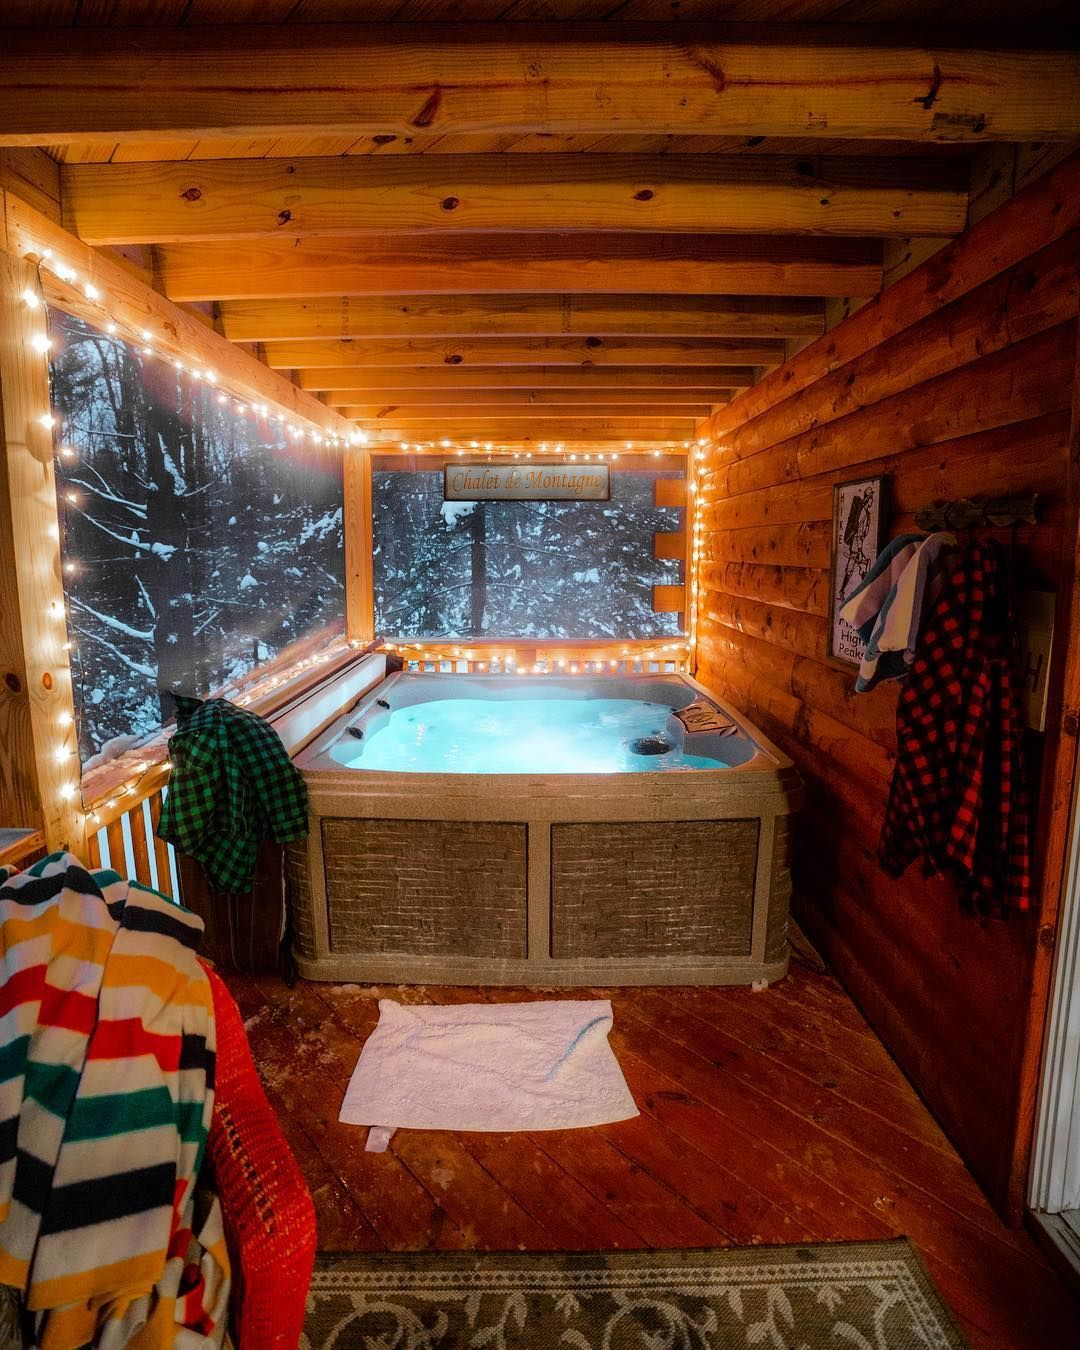 Adirondack Mountains With Kyle Finn Dempsey Indoor Hot Tub Hot Tub Room Cabin Hot Tub